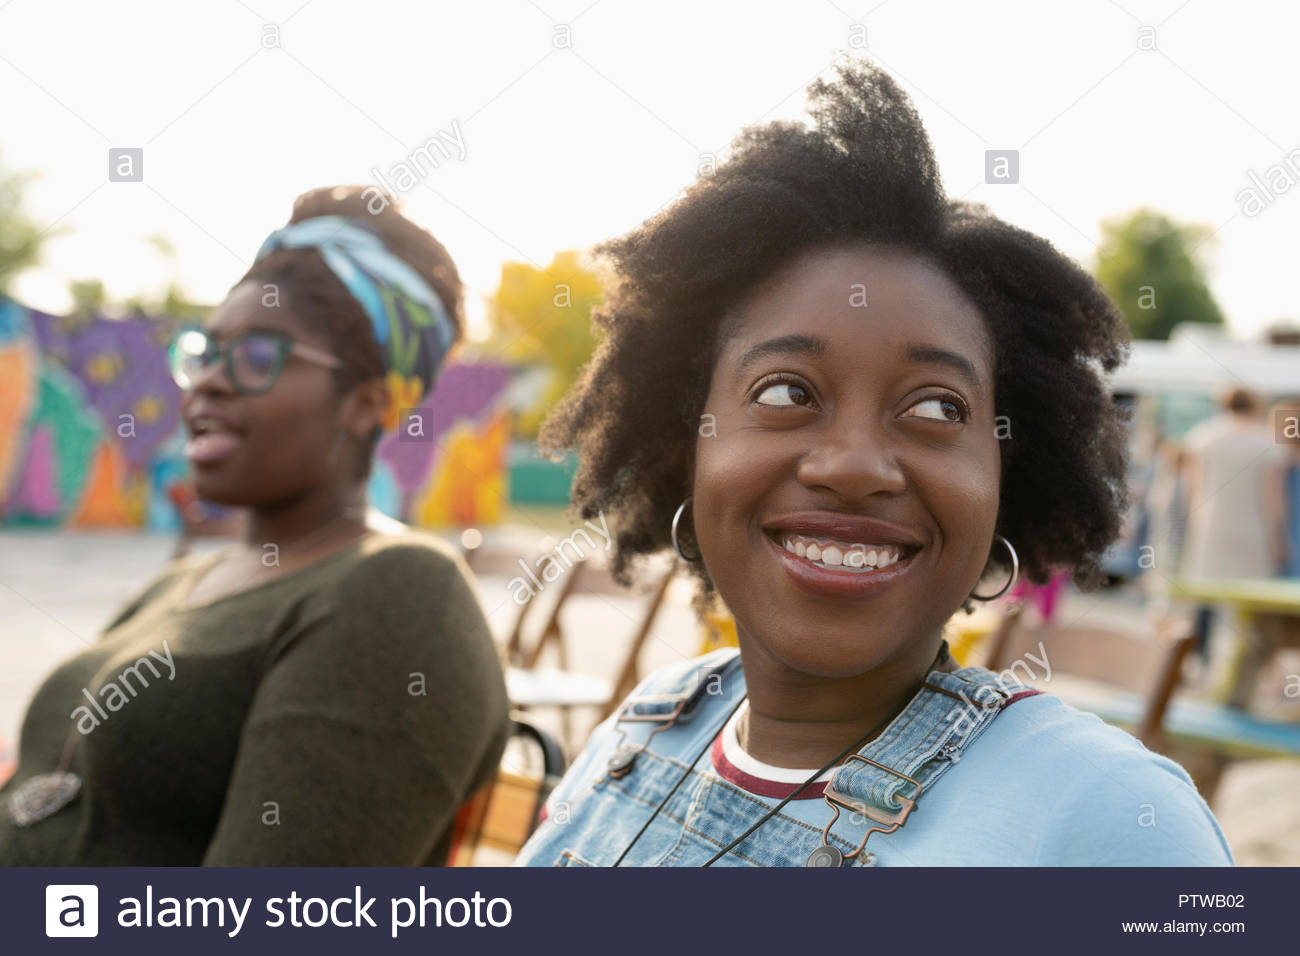 Portrait of smiling young woman looking over shoulder Photo Stock